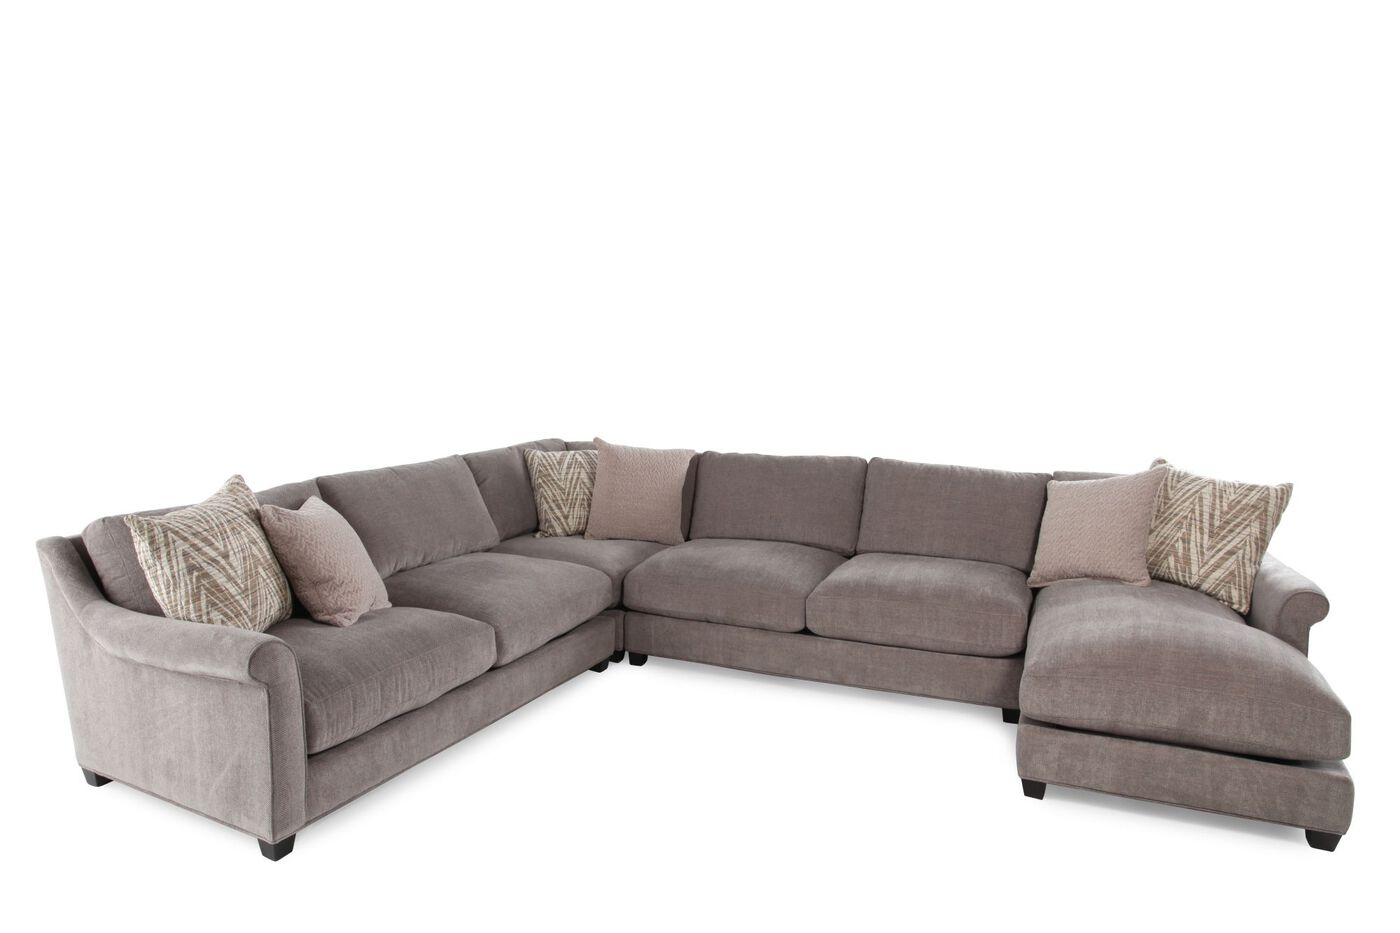 four piece microfiber sectional in milk chocolate mathis brothers furniture. Black Bedroom Furniture Sets. Home Design Ideas